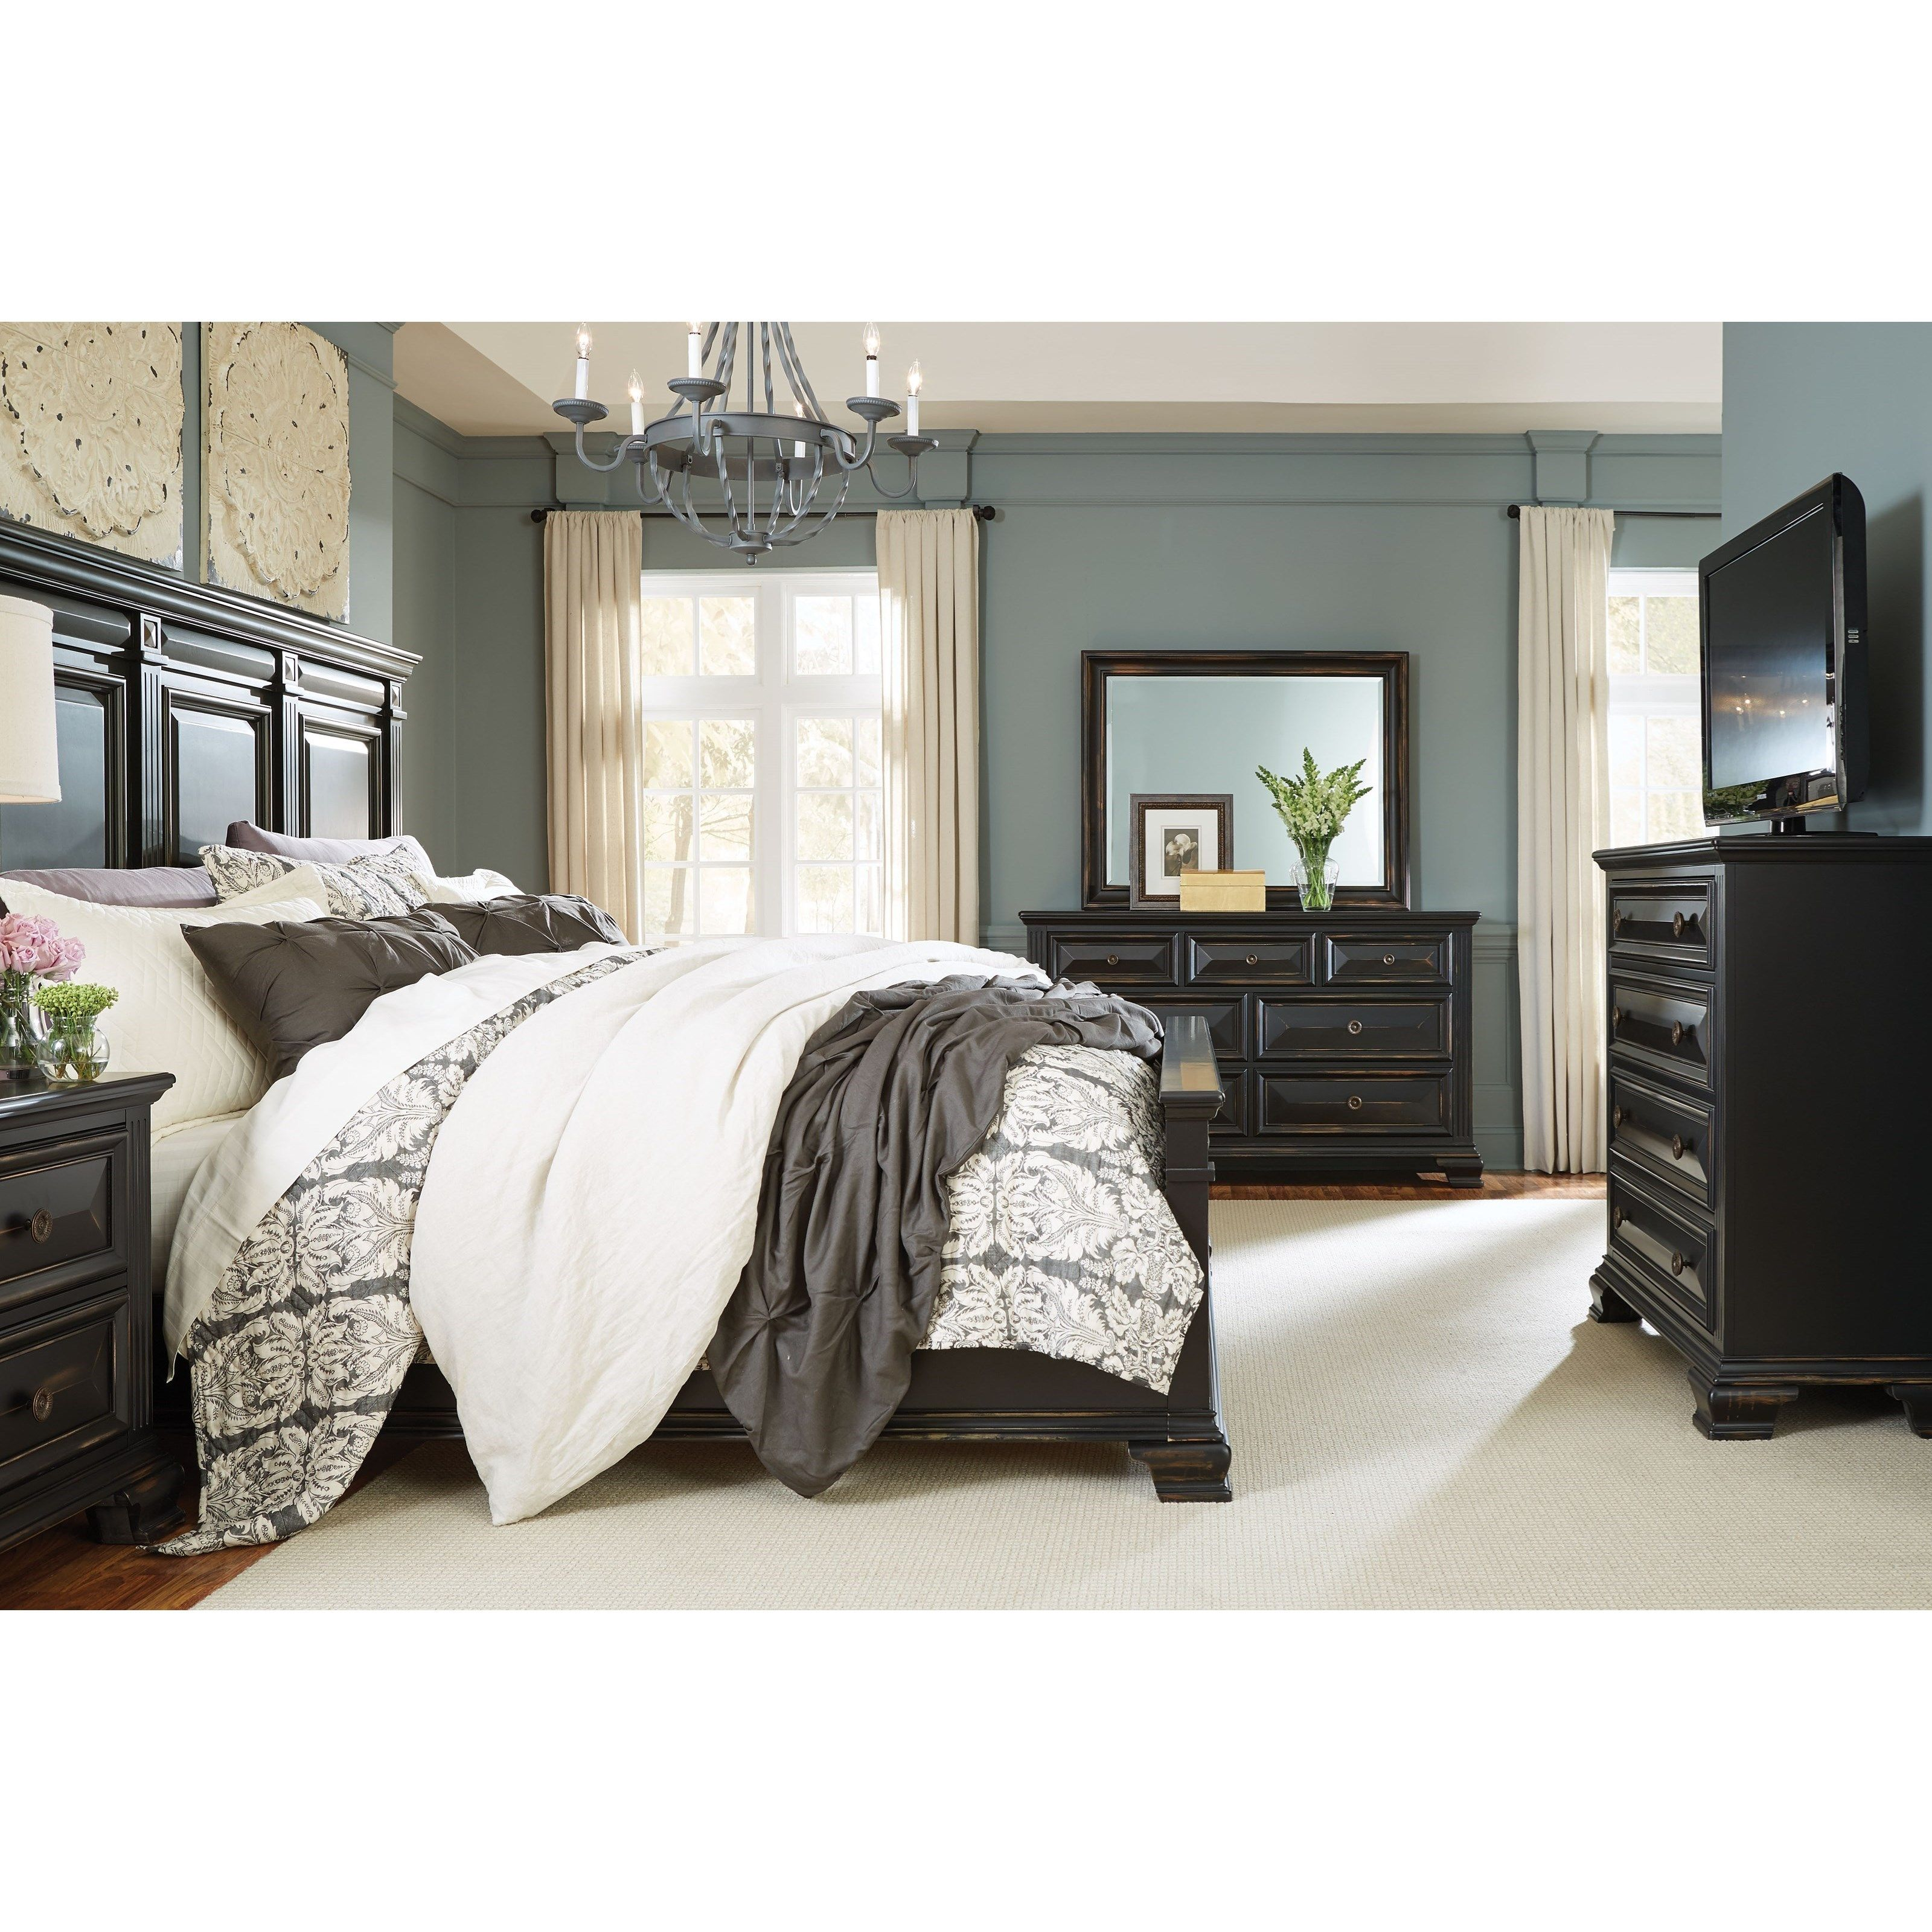 Passages King Bedroom Group By Standard Furniture At Wayside Furniture Furniture Bedroom Set Standard Furniture